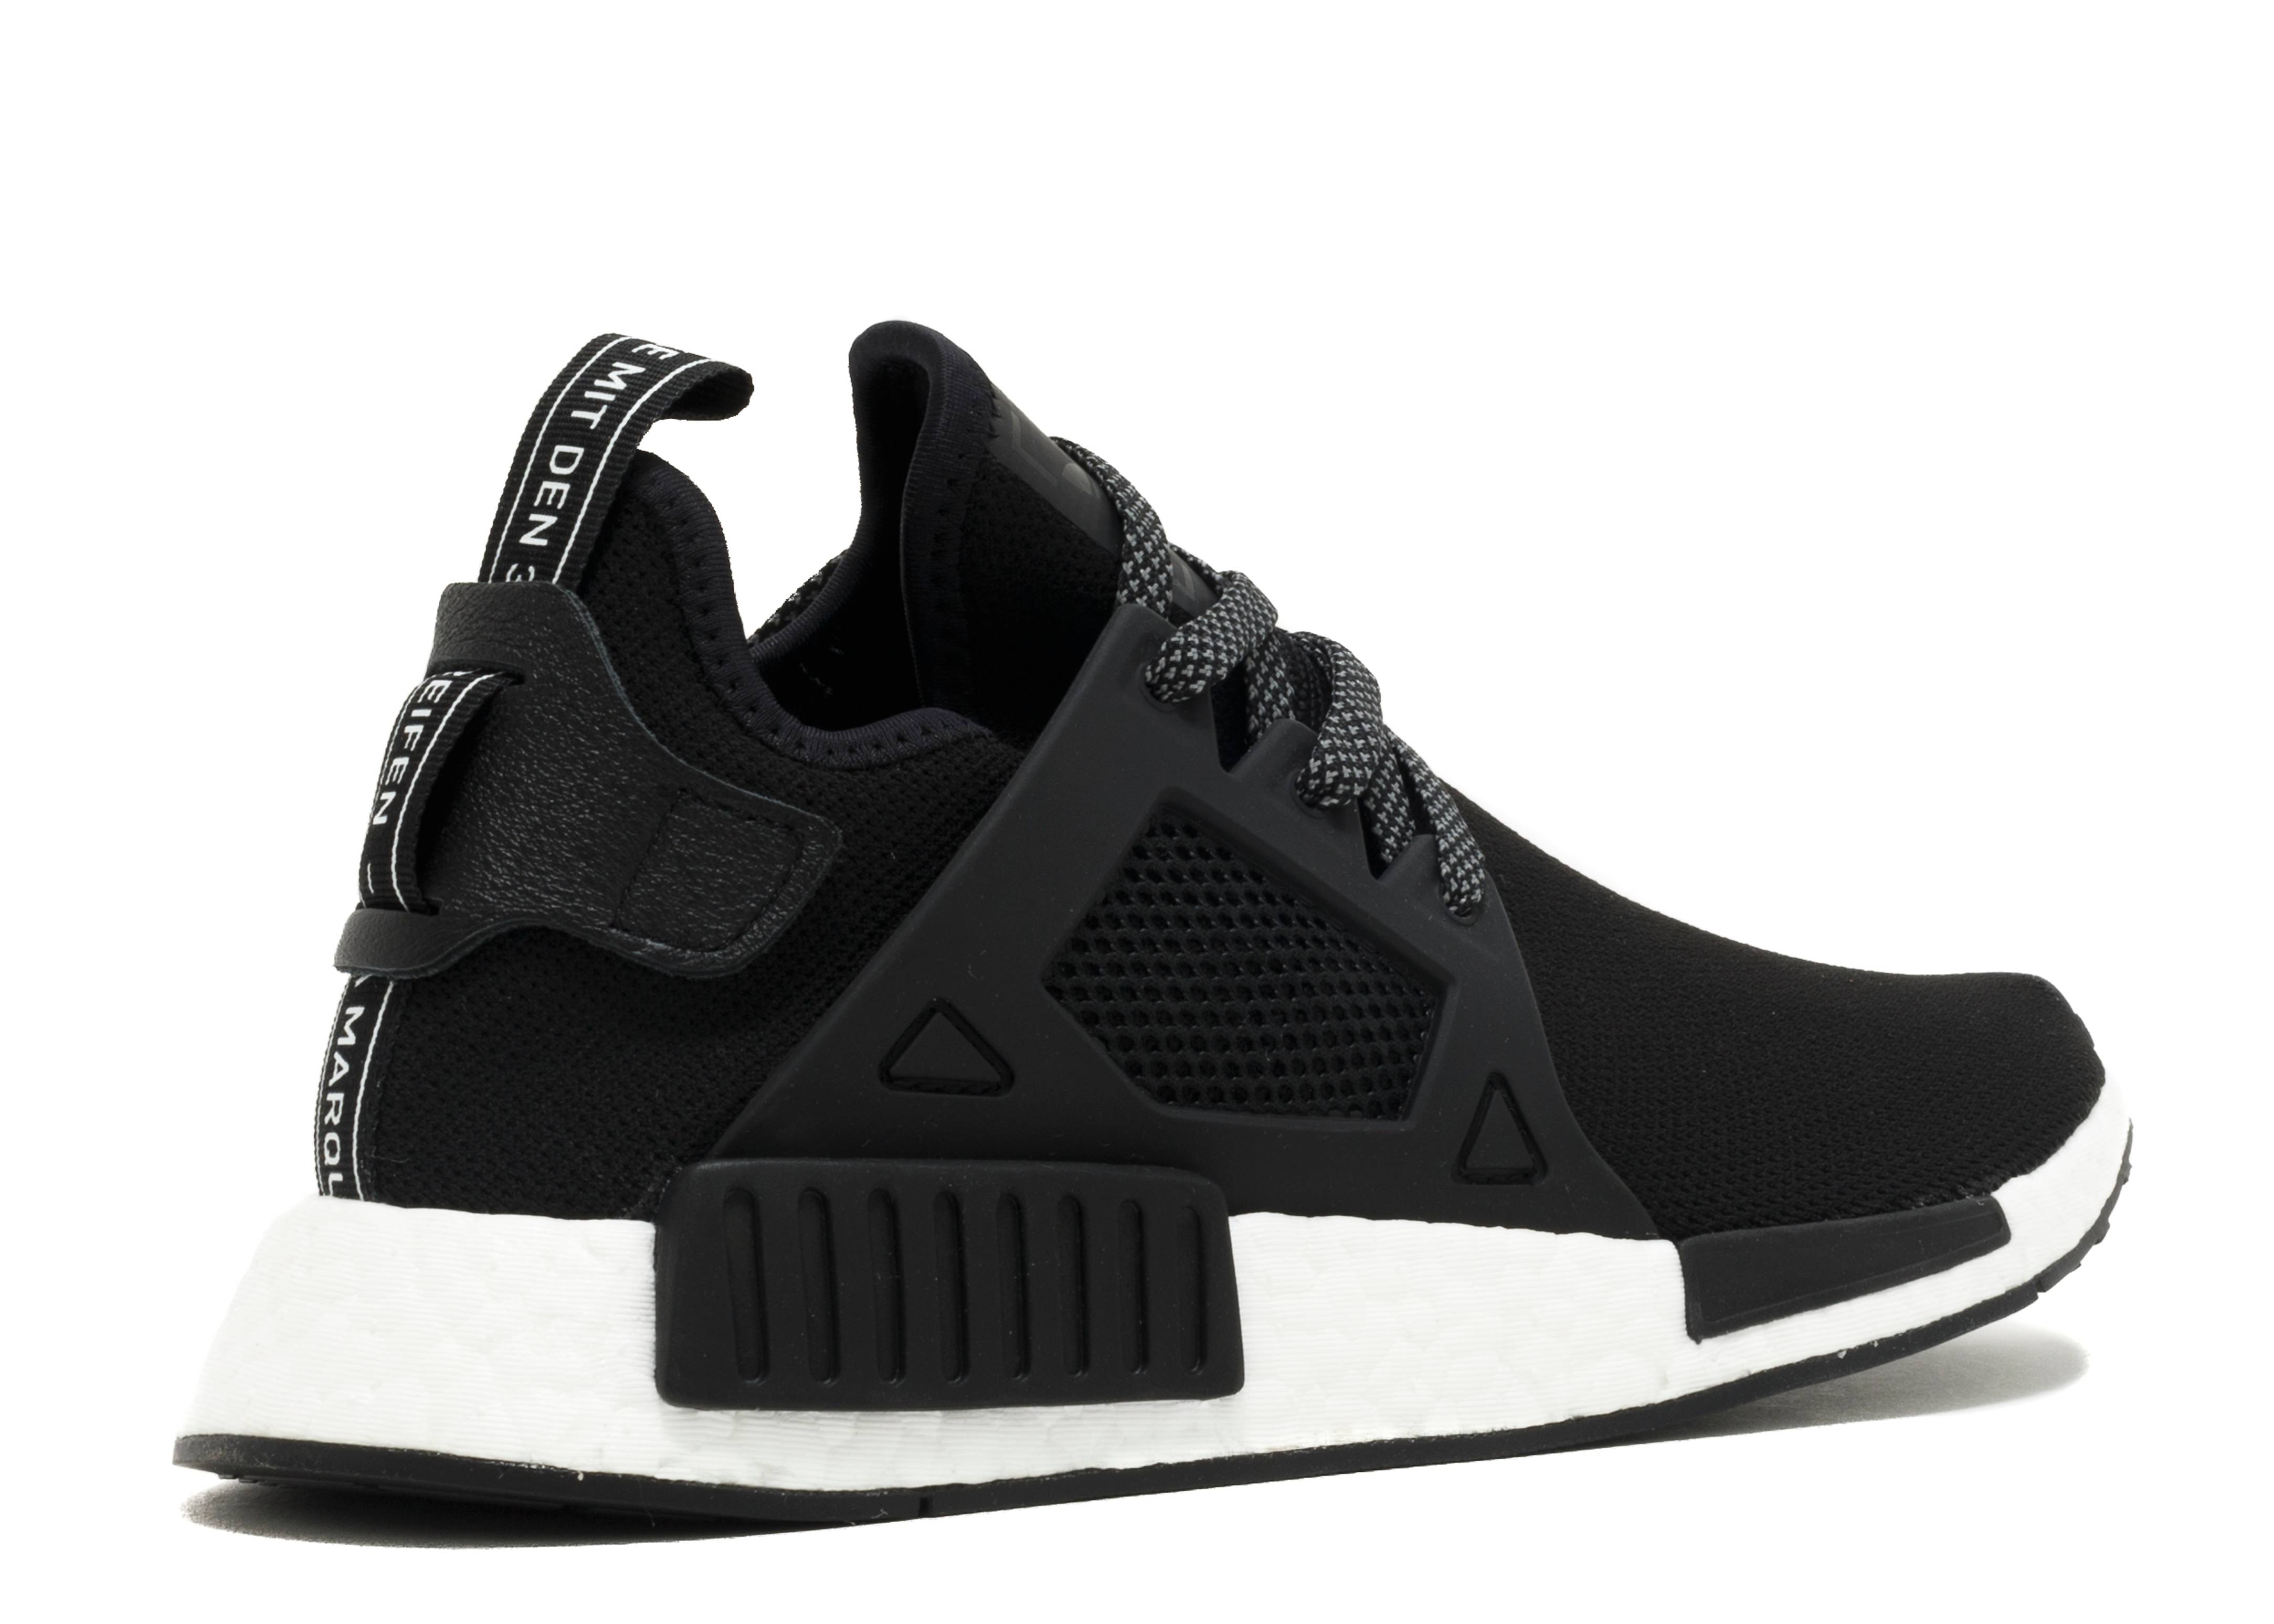 New Adidas NMD XR1 PK Primeknit Men's Shoes (Oreo) Size 9